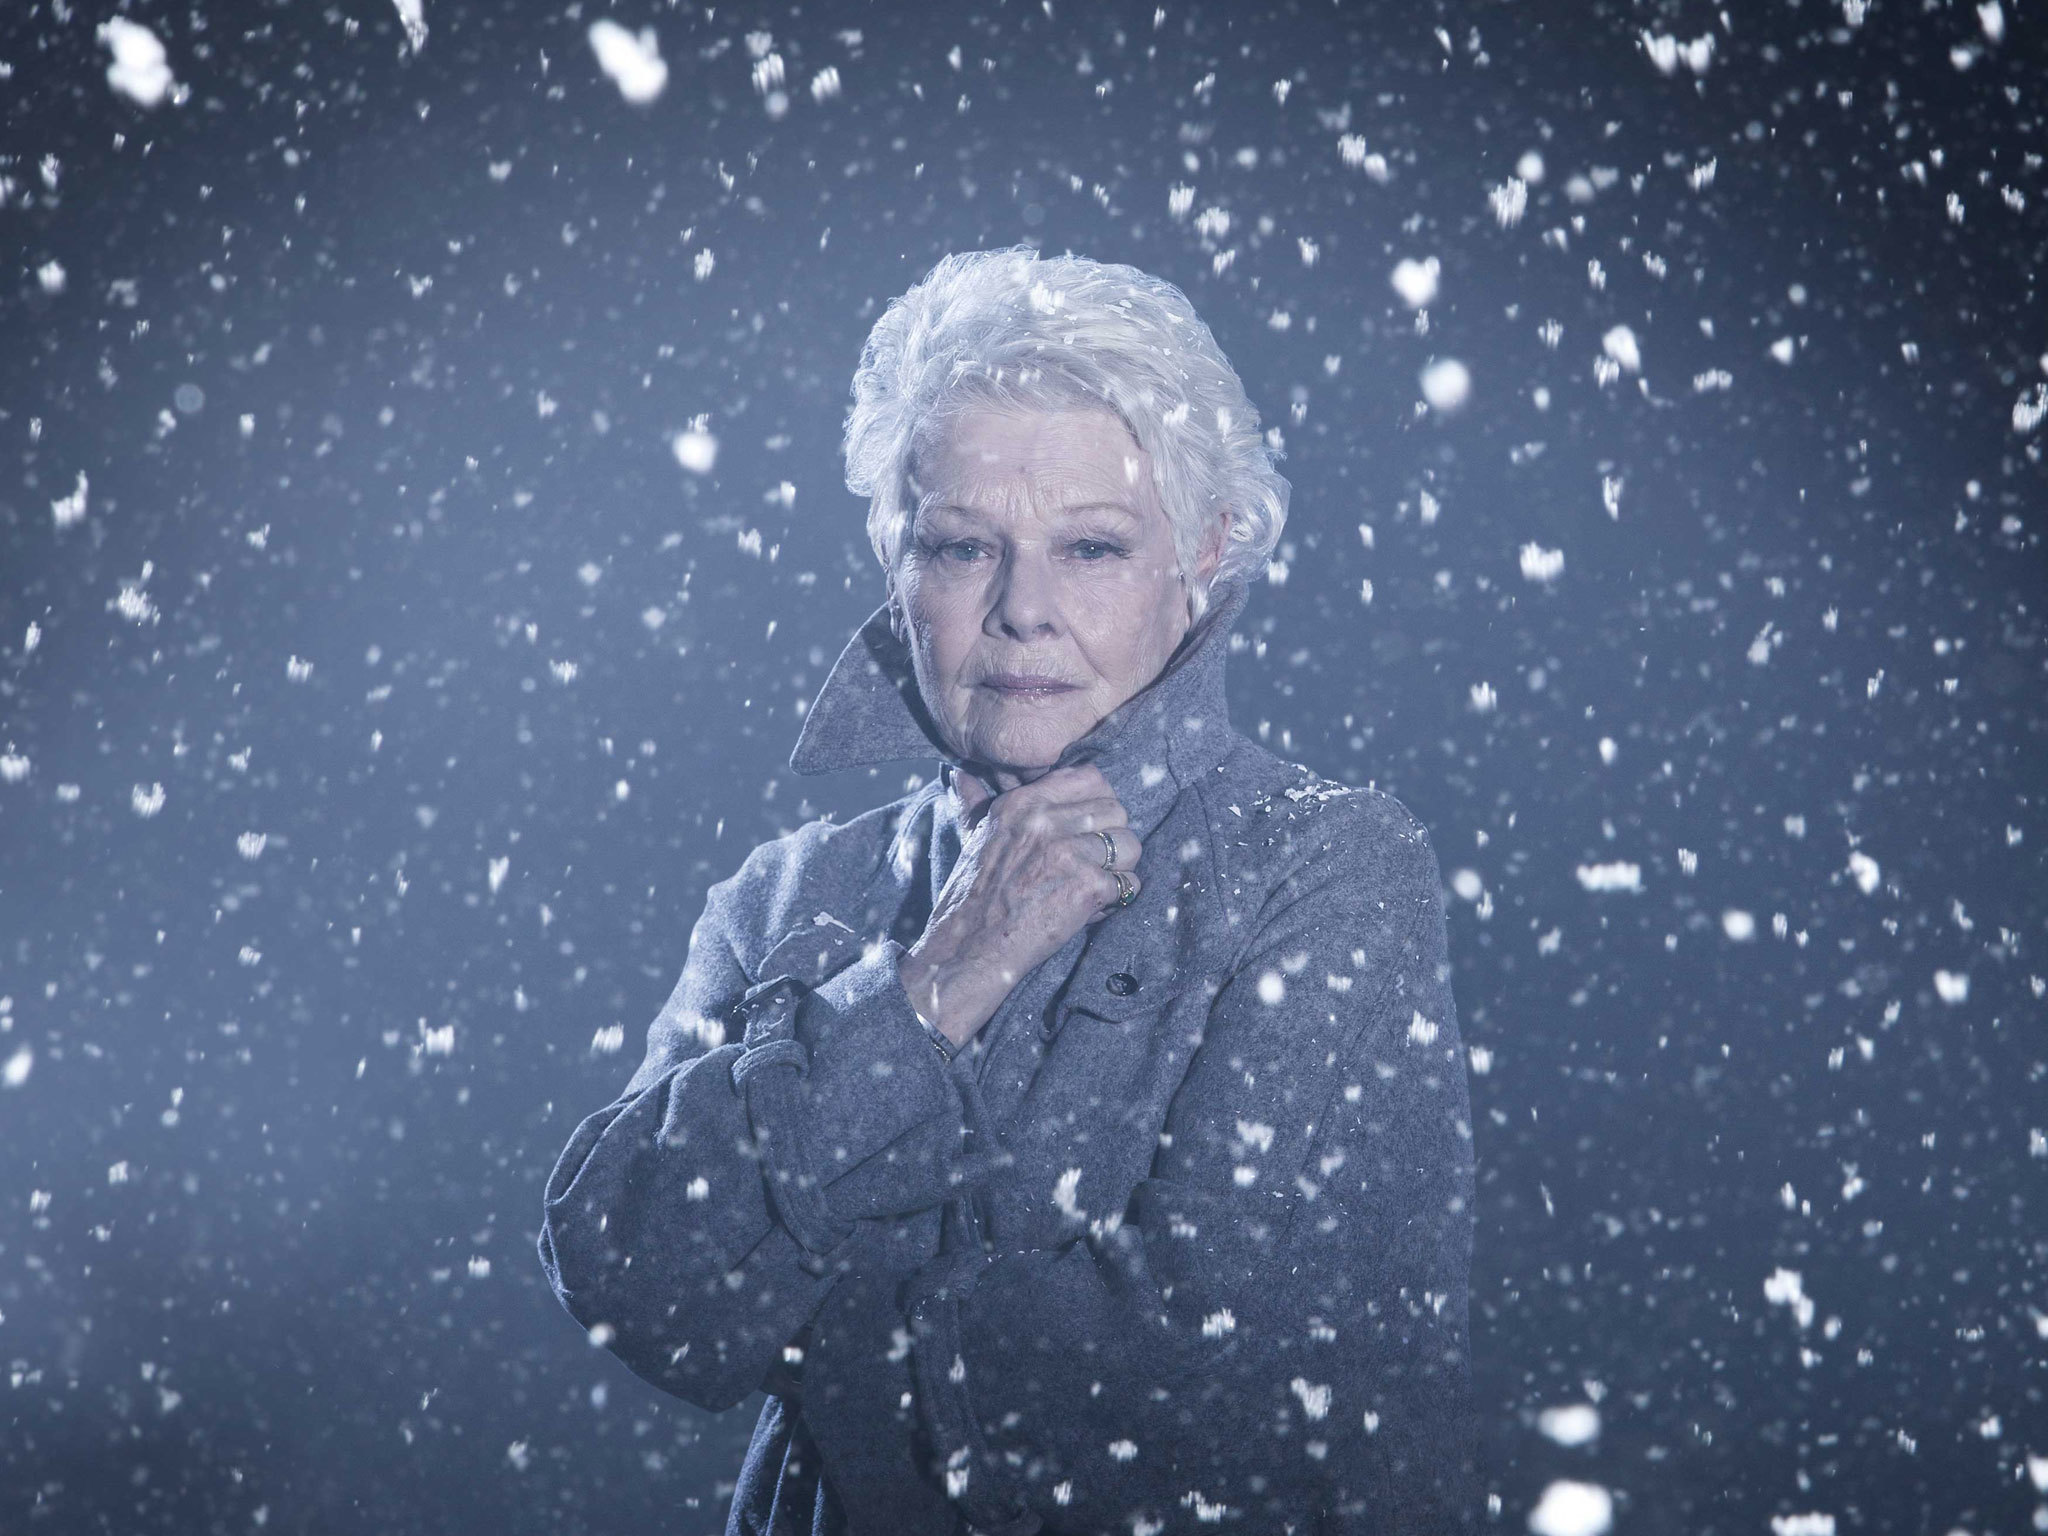 Dame Judi Dench on retirement, Star Wars rumours and Jeremy Corbyn